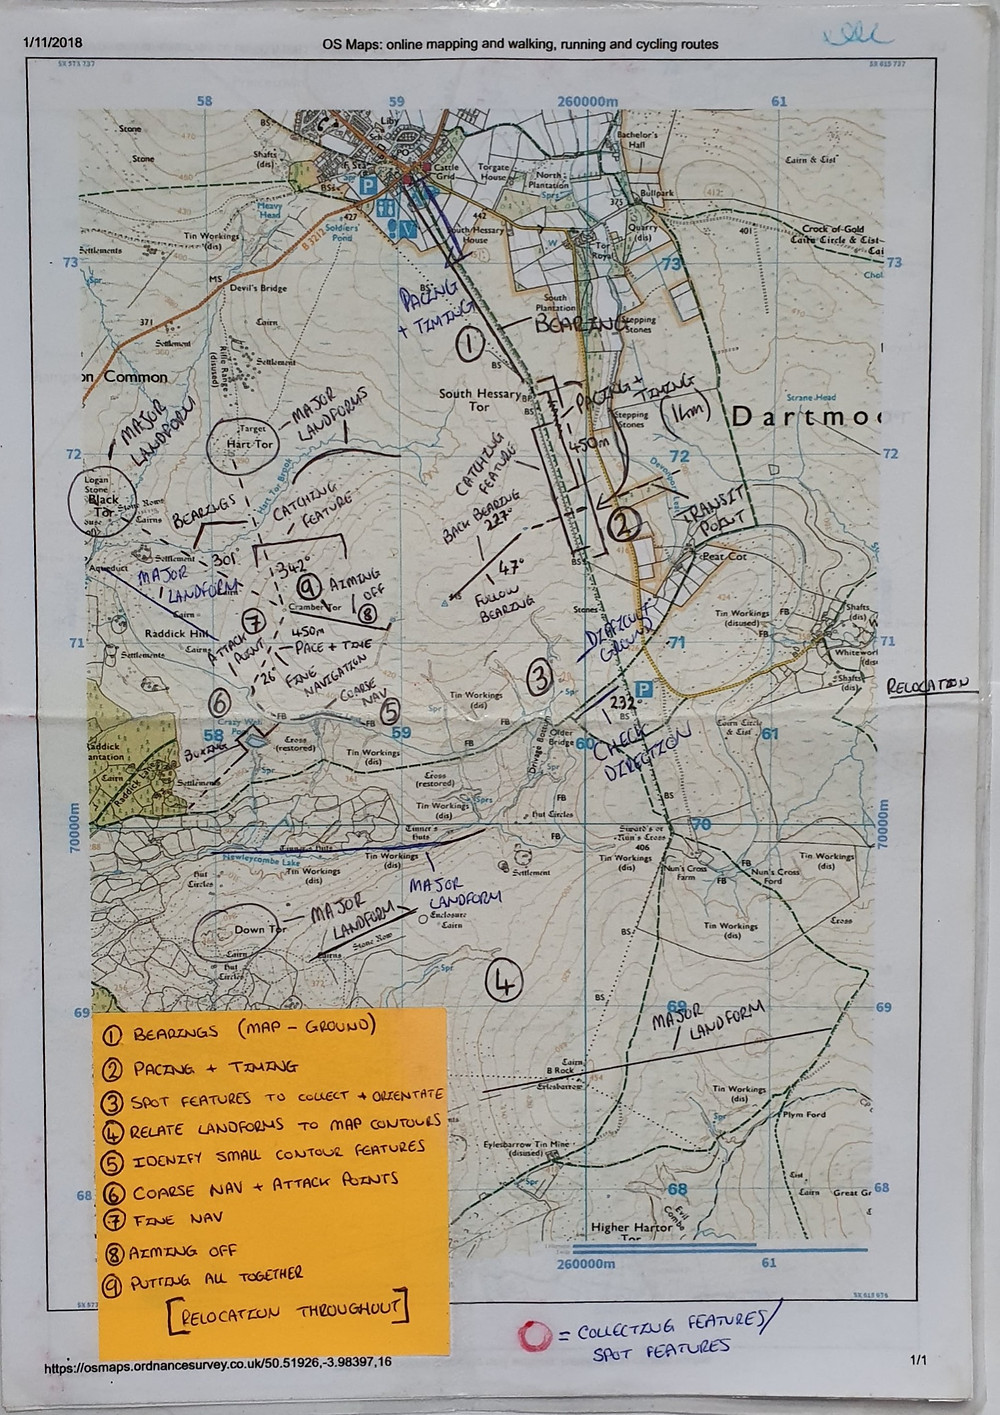 annotated printed OS map